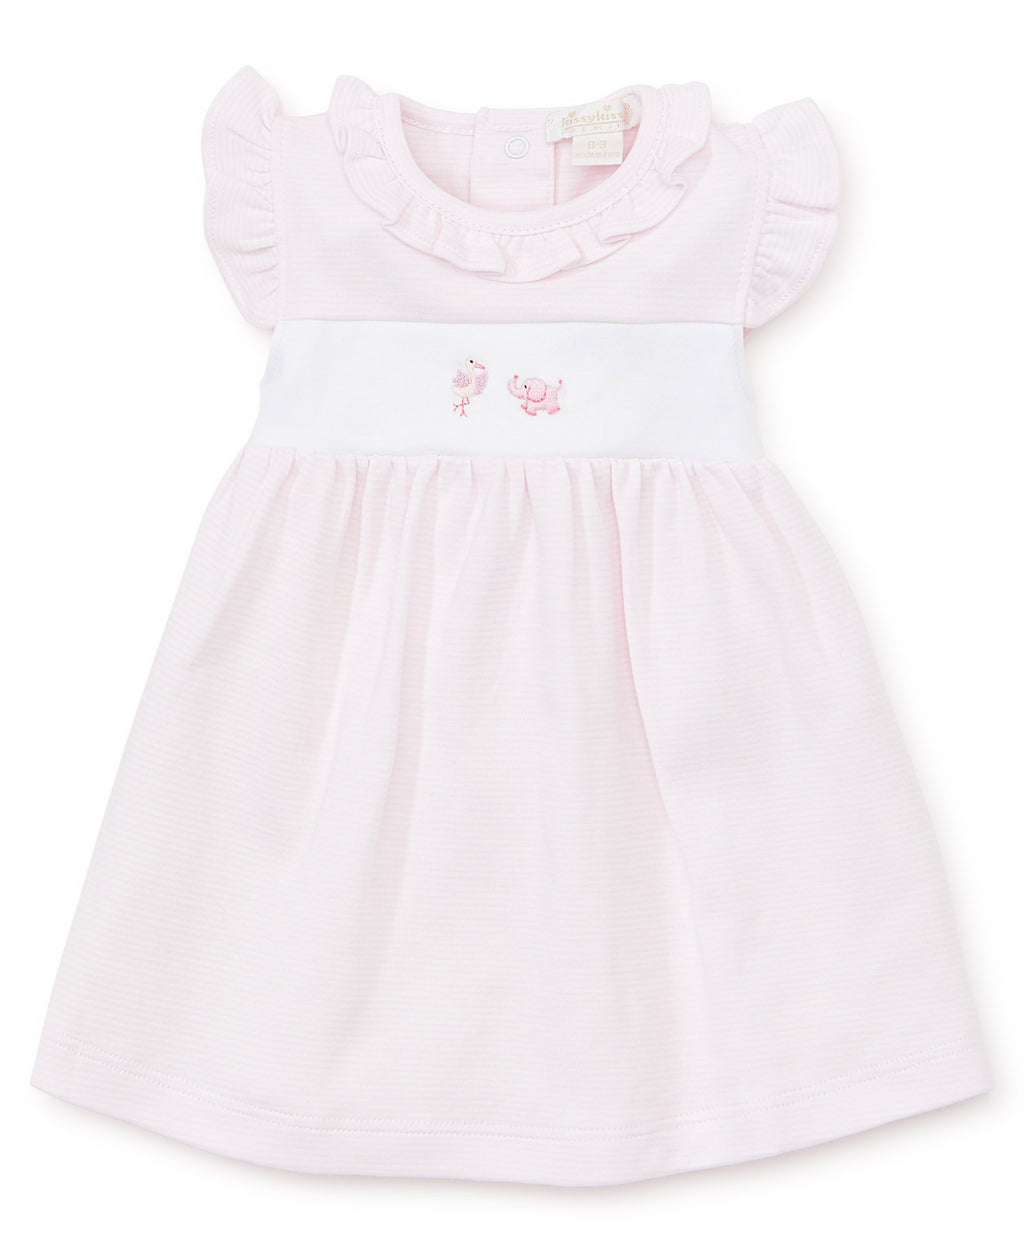 Hand Emb. Premier Animal Crackers Pink Dress Set